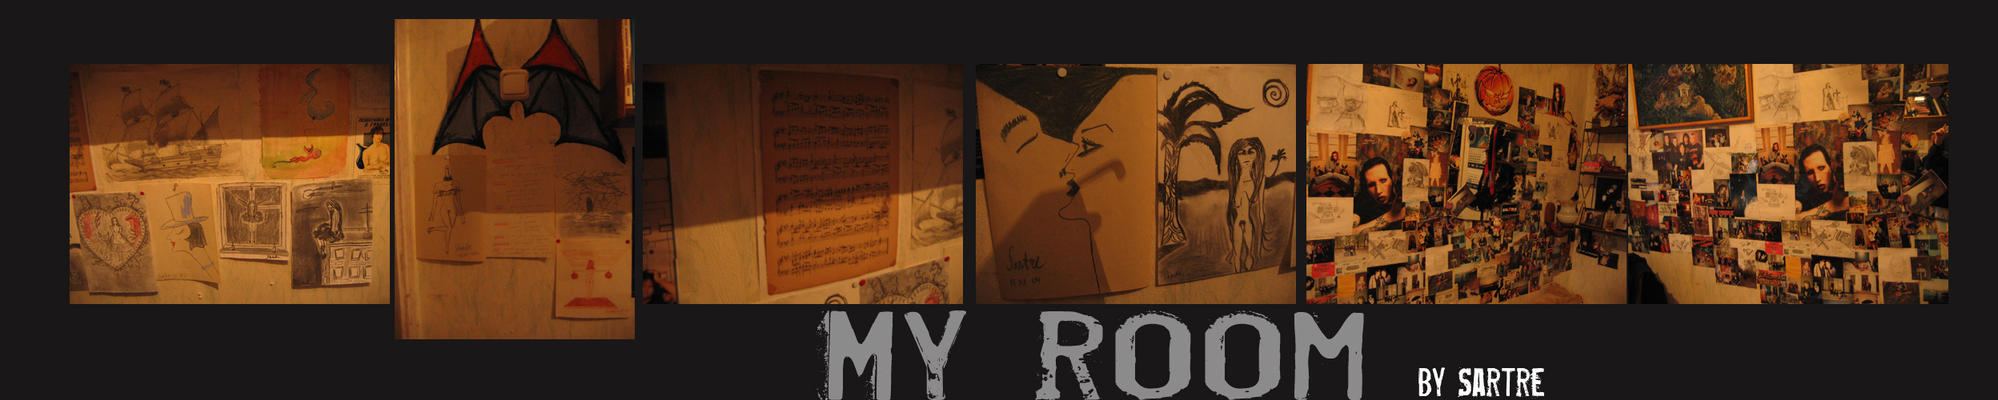 My room by Sartr